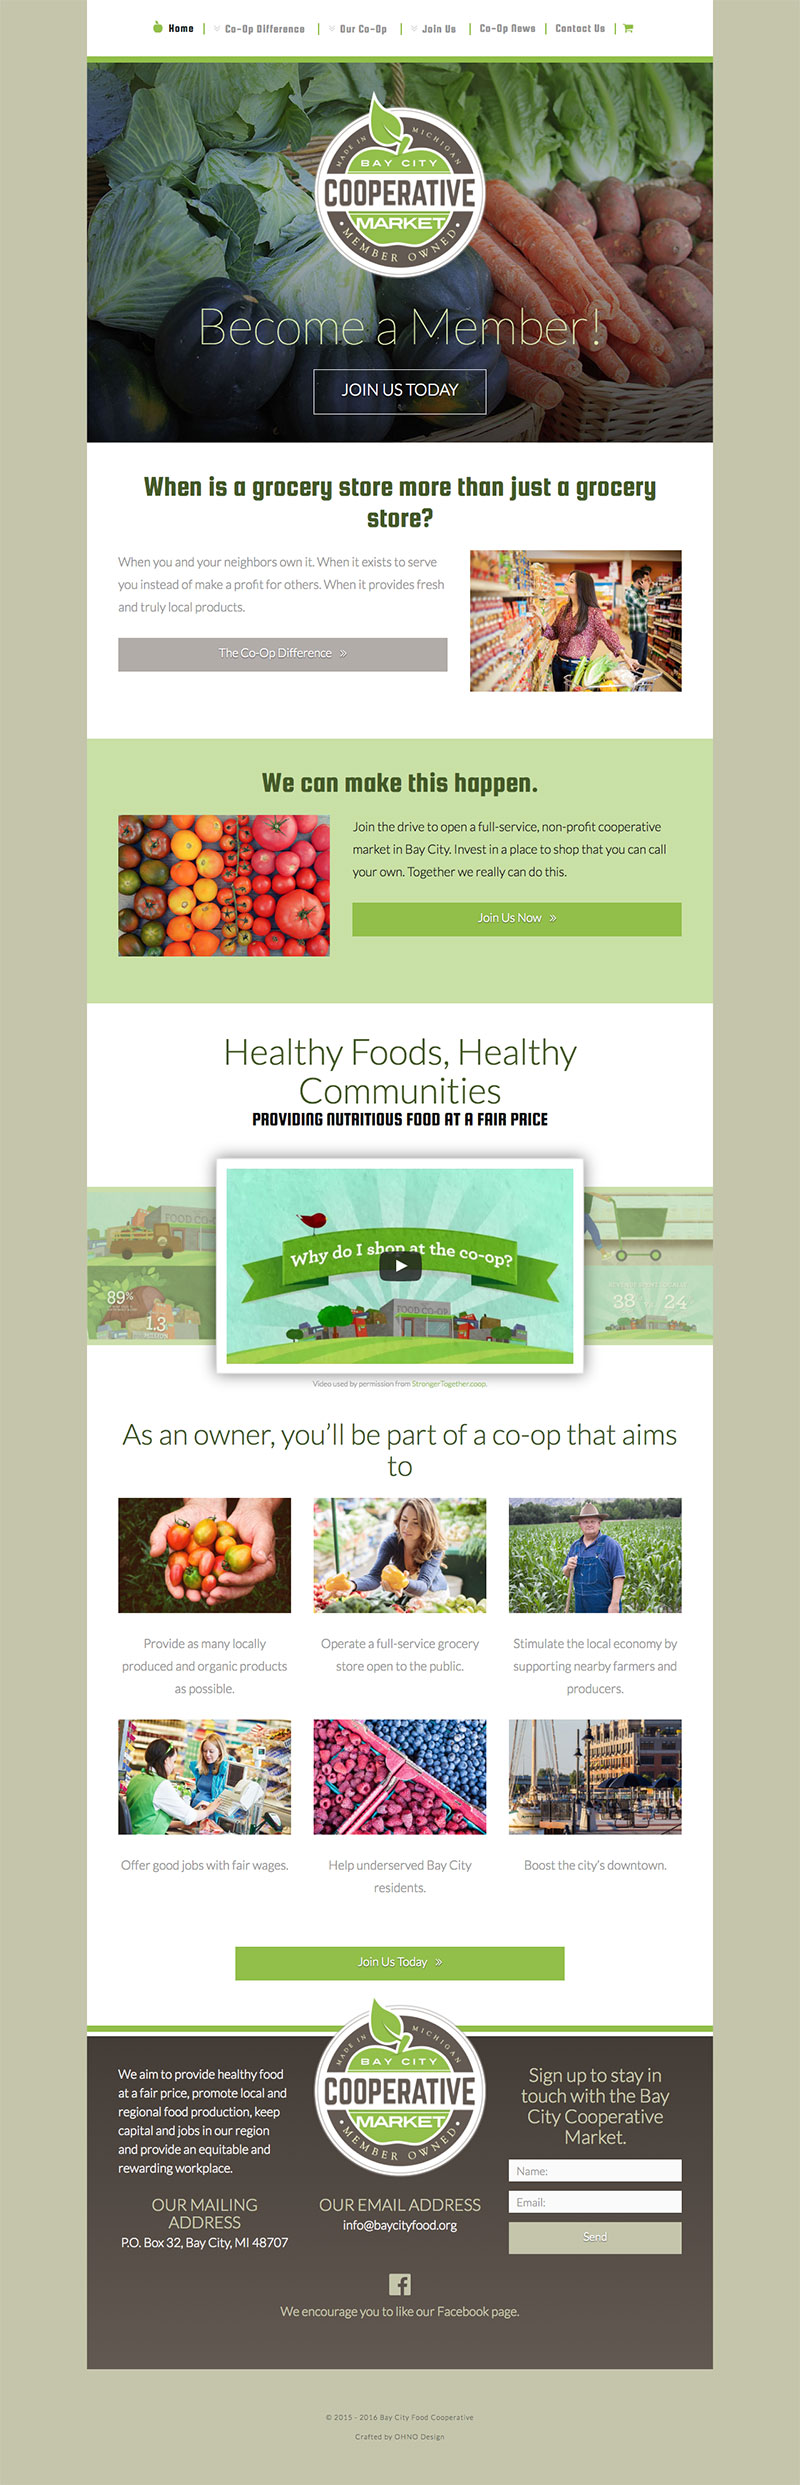 Bay City Cooperative Market homepage